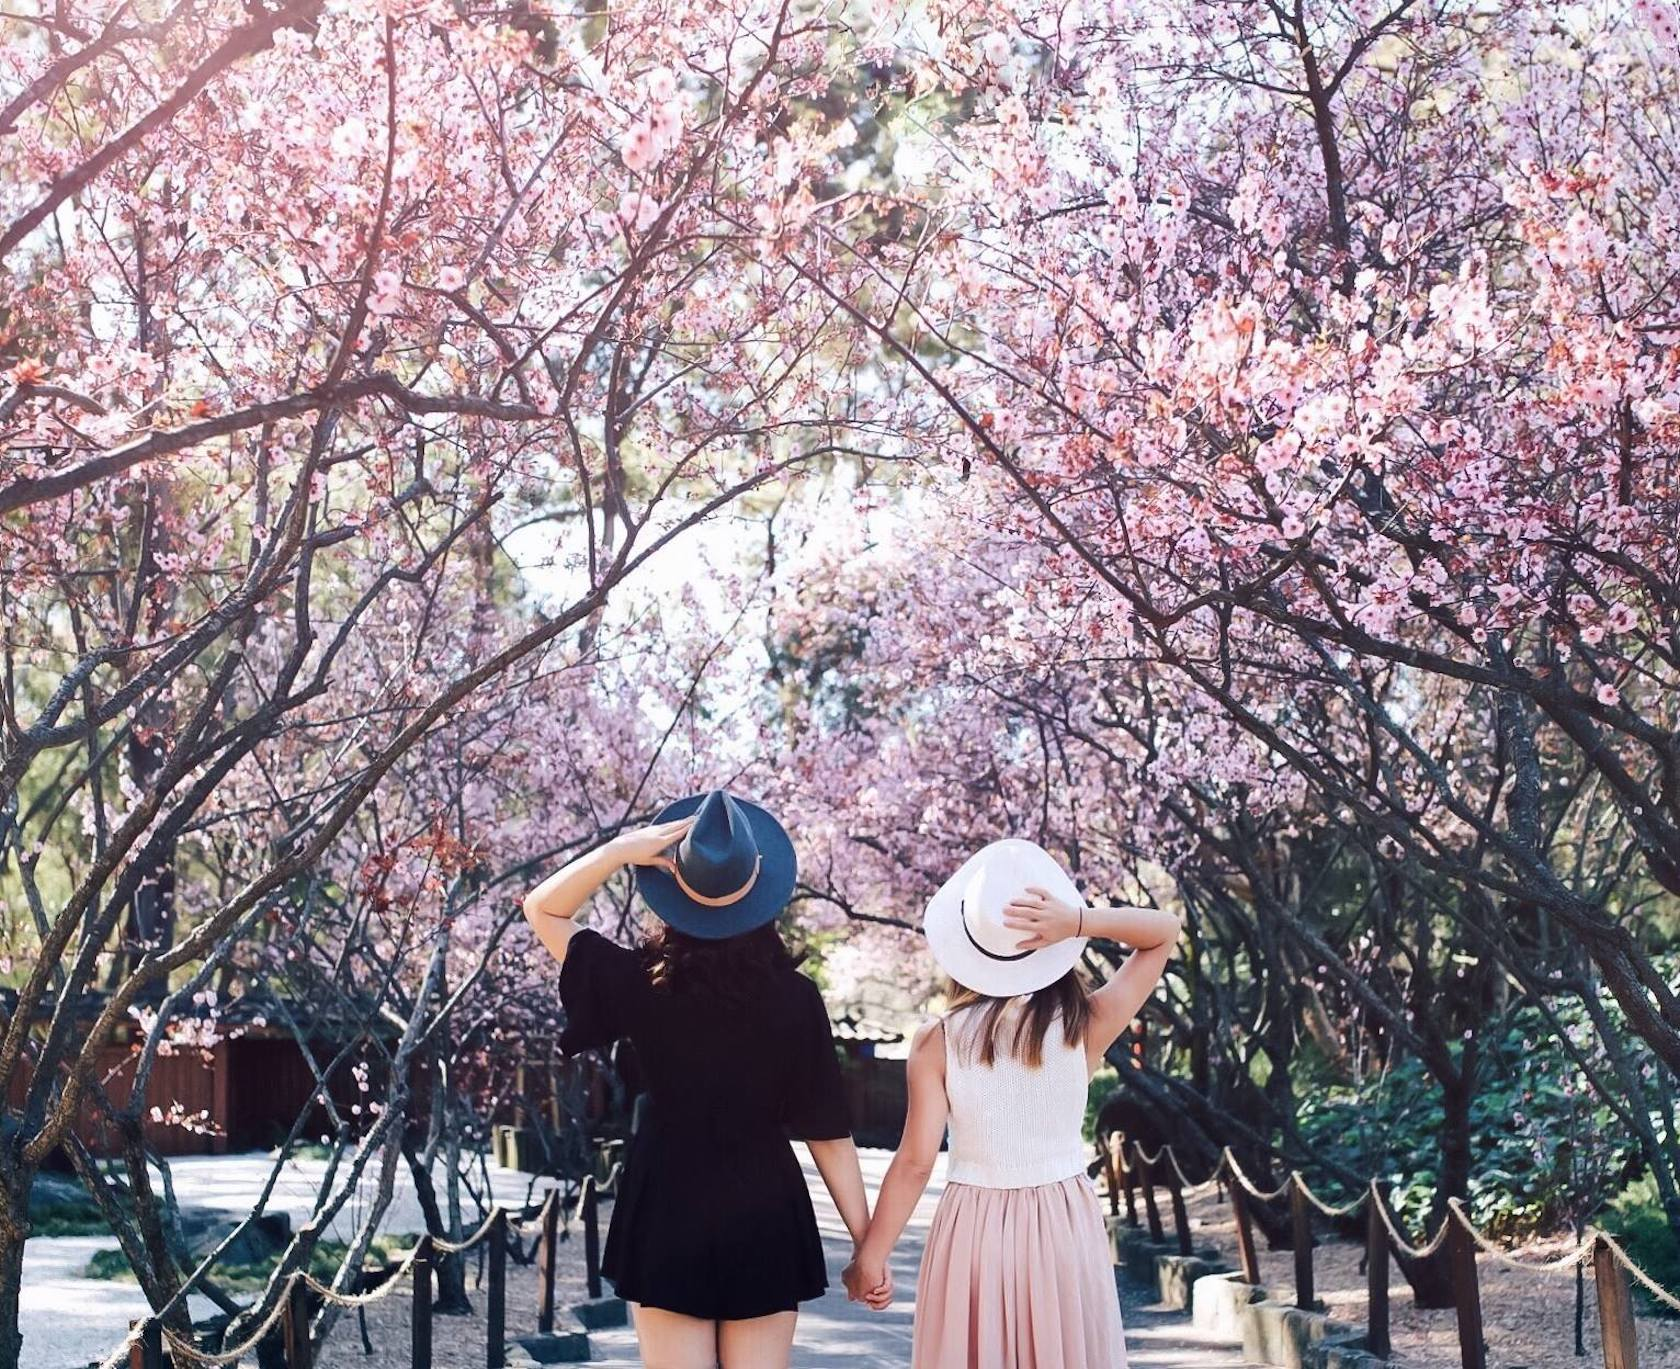 Sydney Cherry Blossom Festival See Japan S Famous Sakura This Month,Wall Stickers For Bedroom Amazon